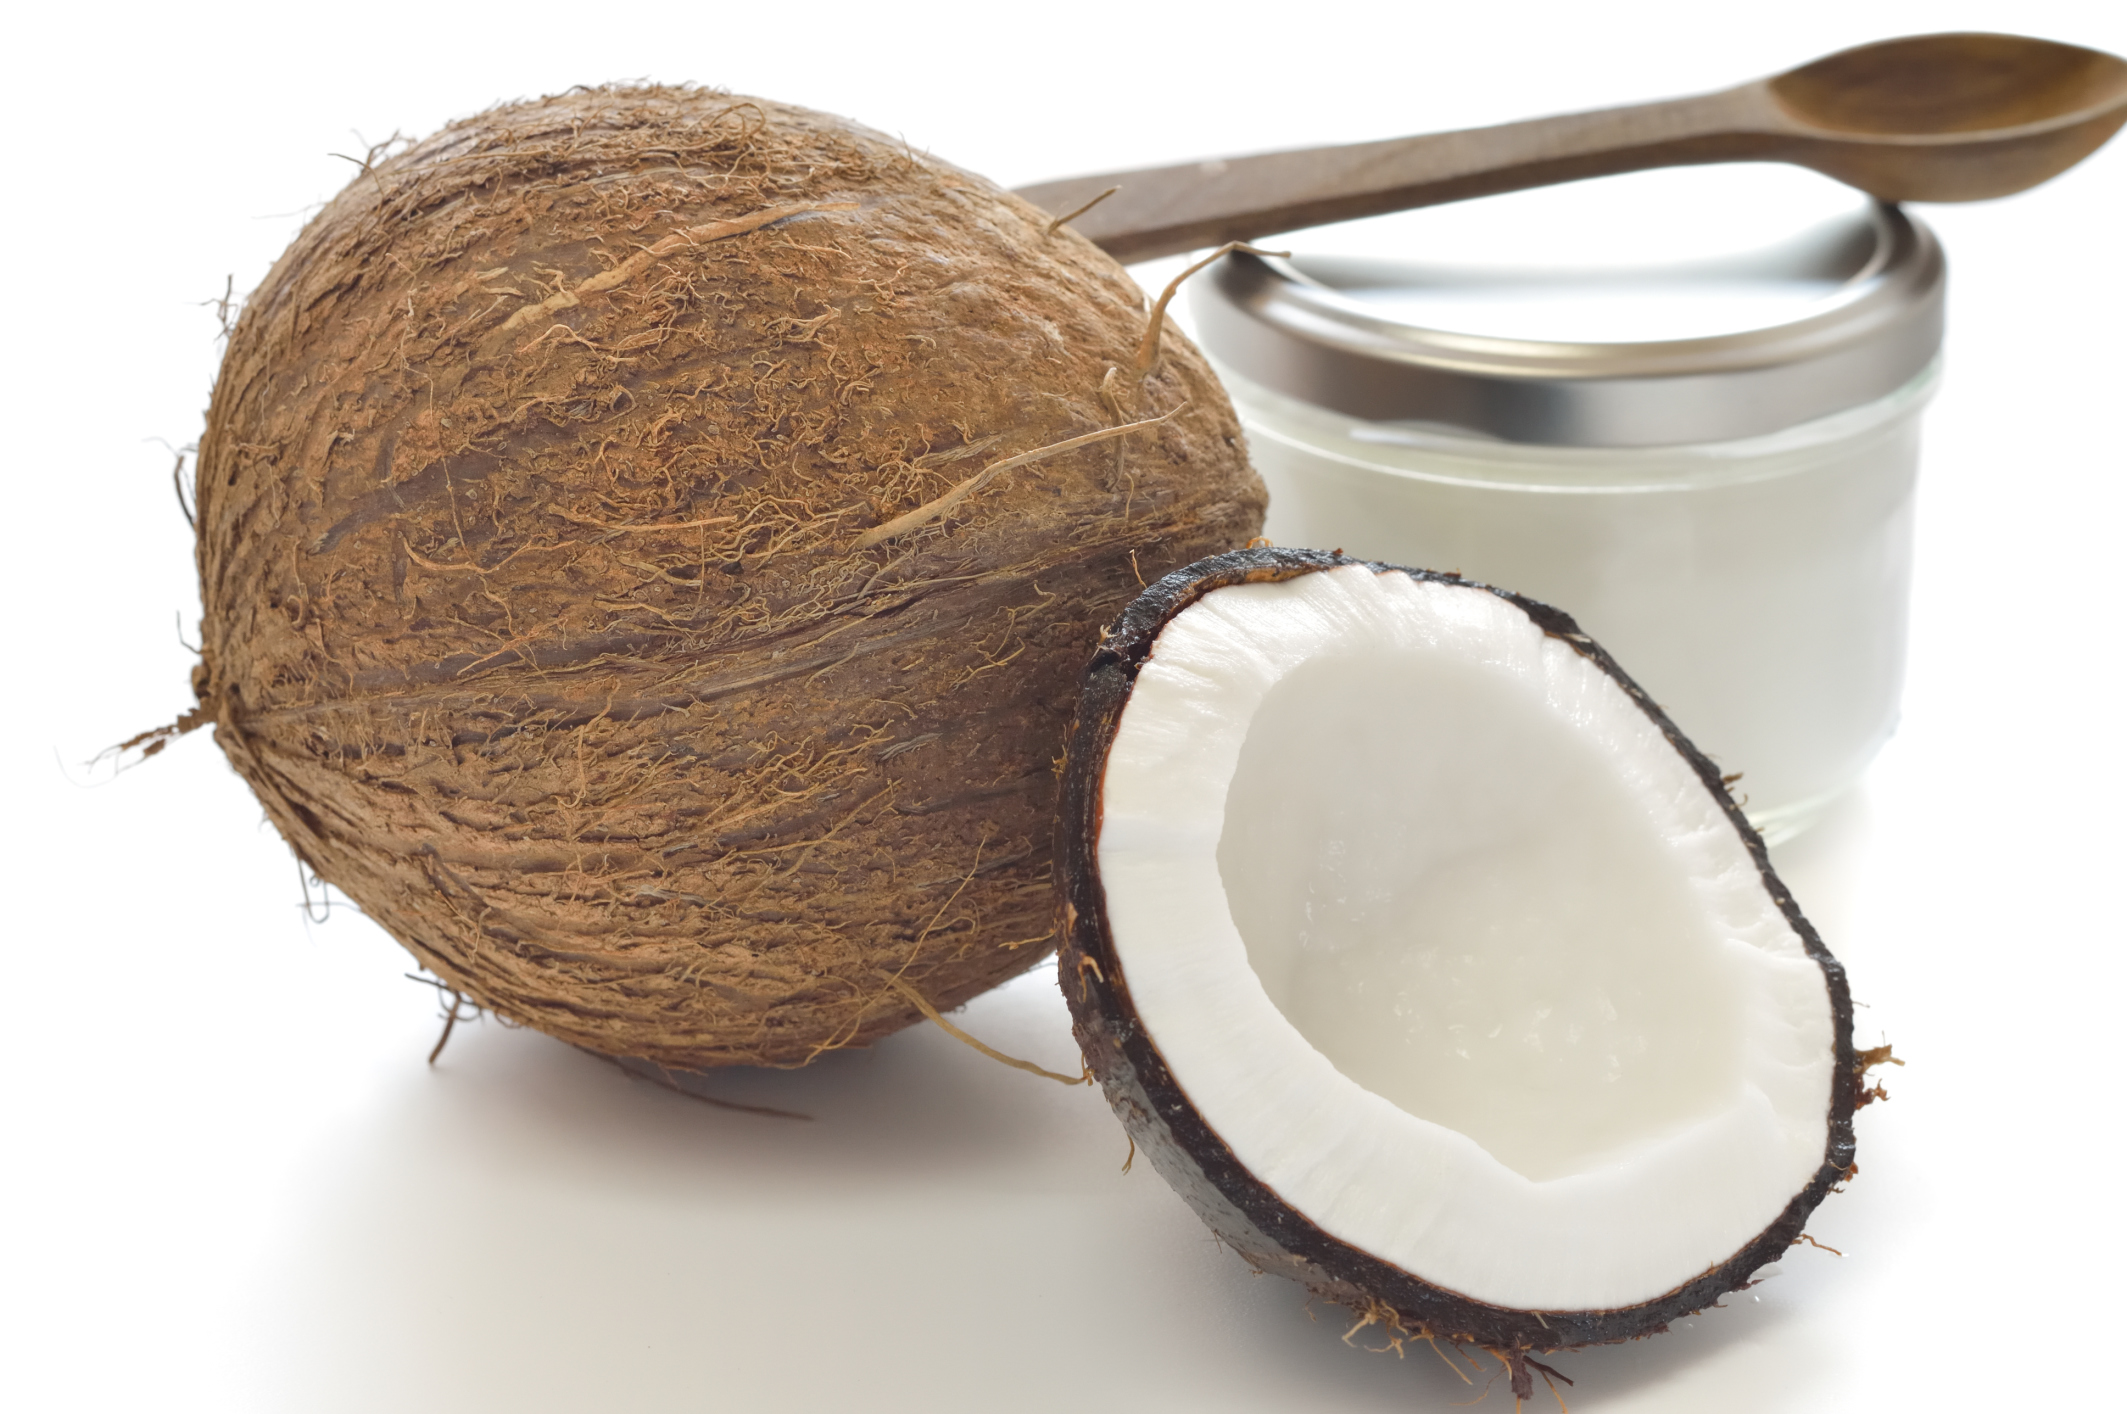 coconuts and coconut oil jar